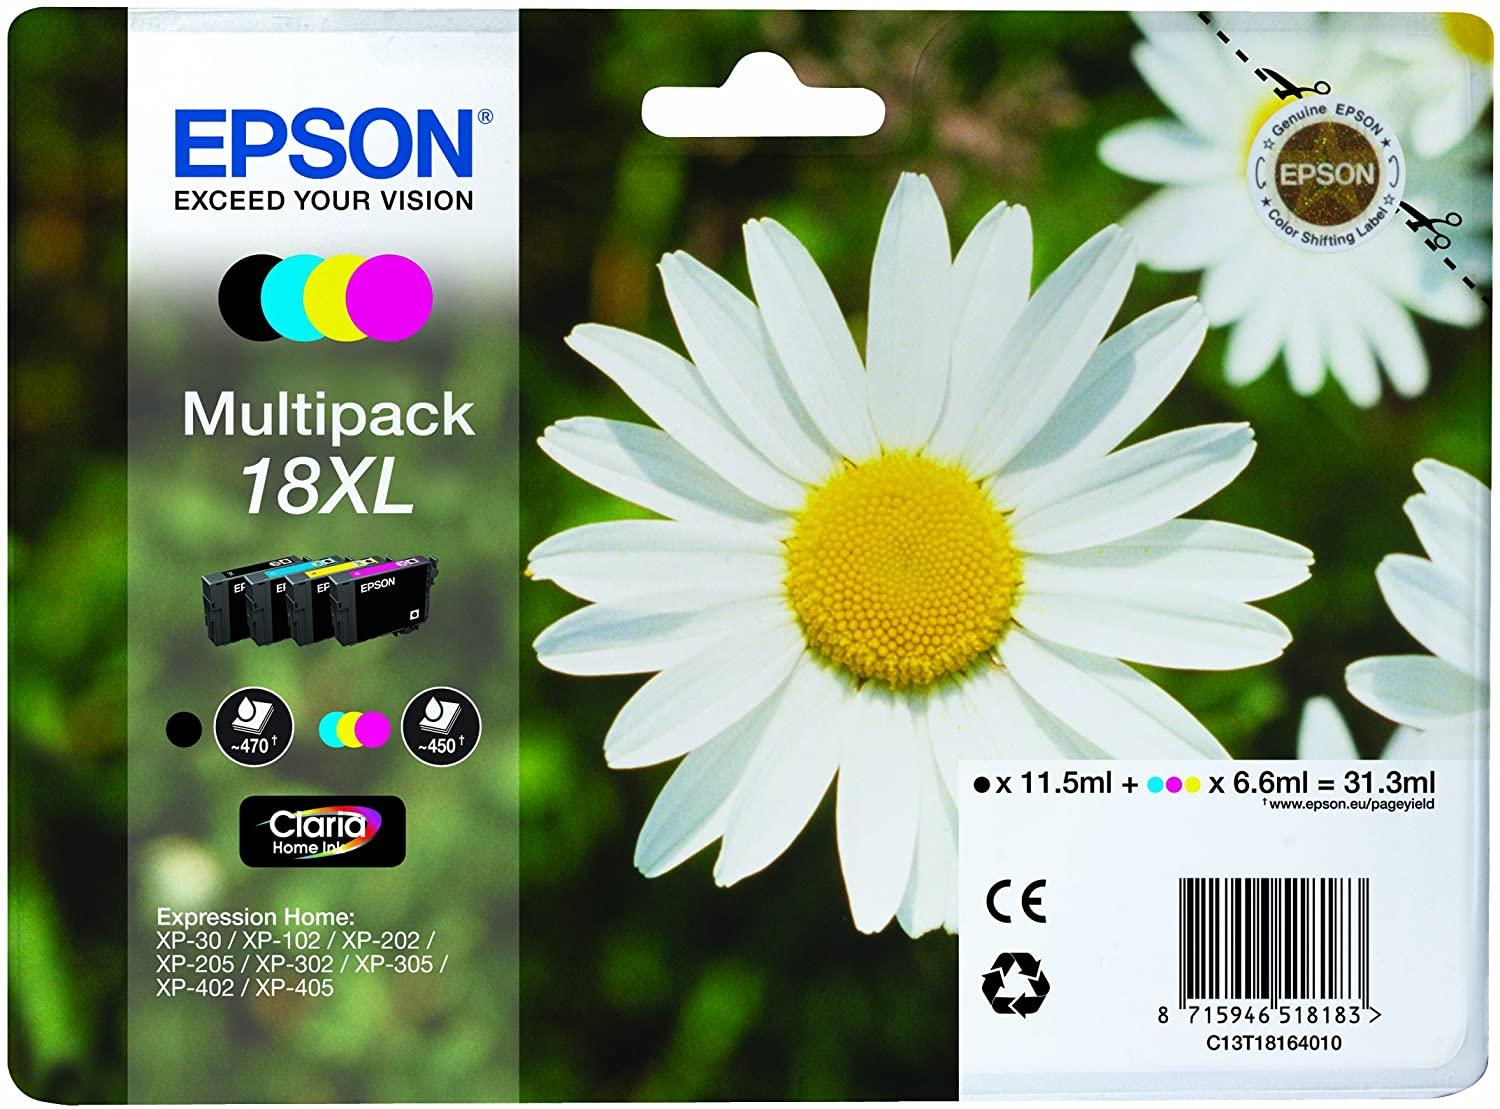 EPSON MULTIPACK MARGHERITA XL N.4 CARTUCCE